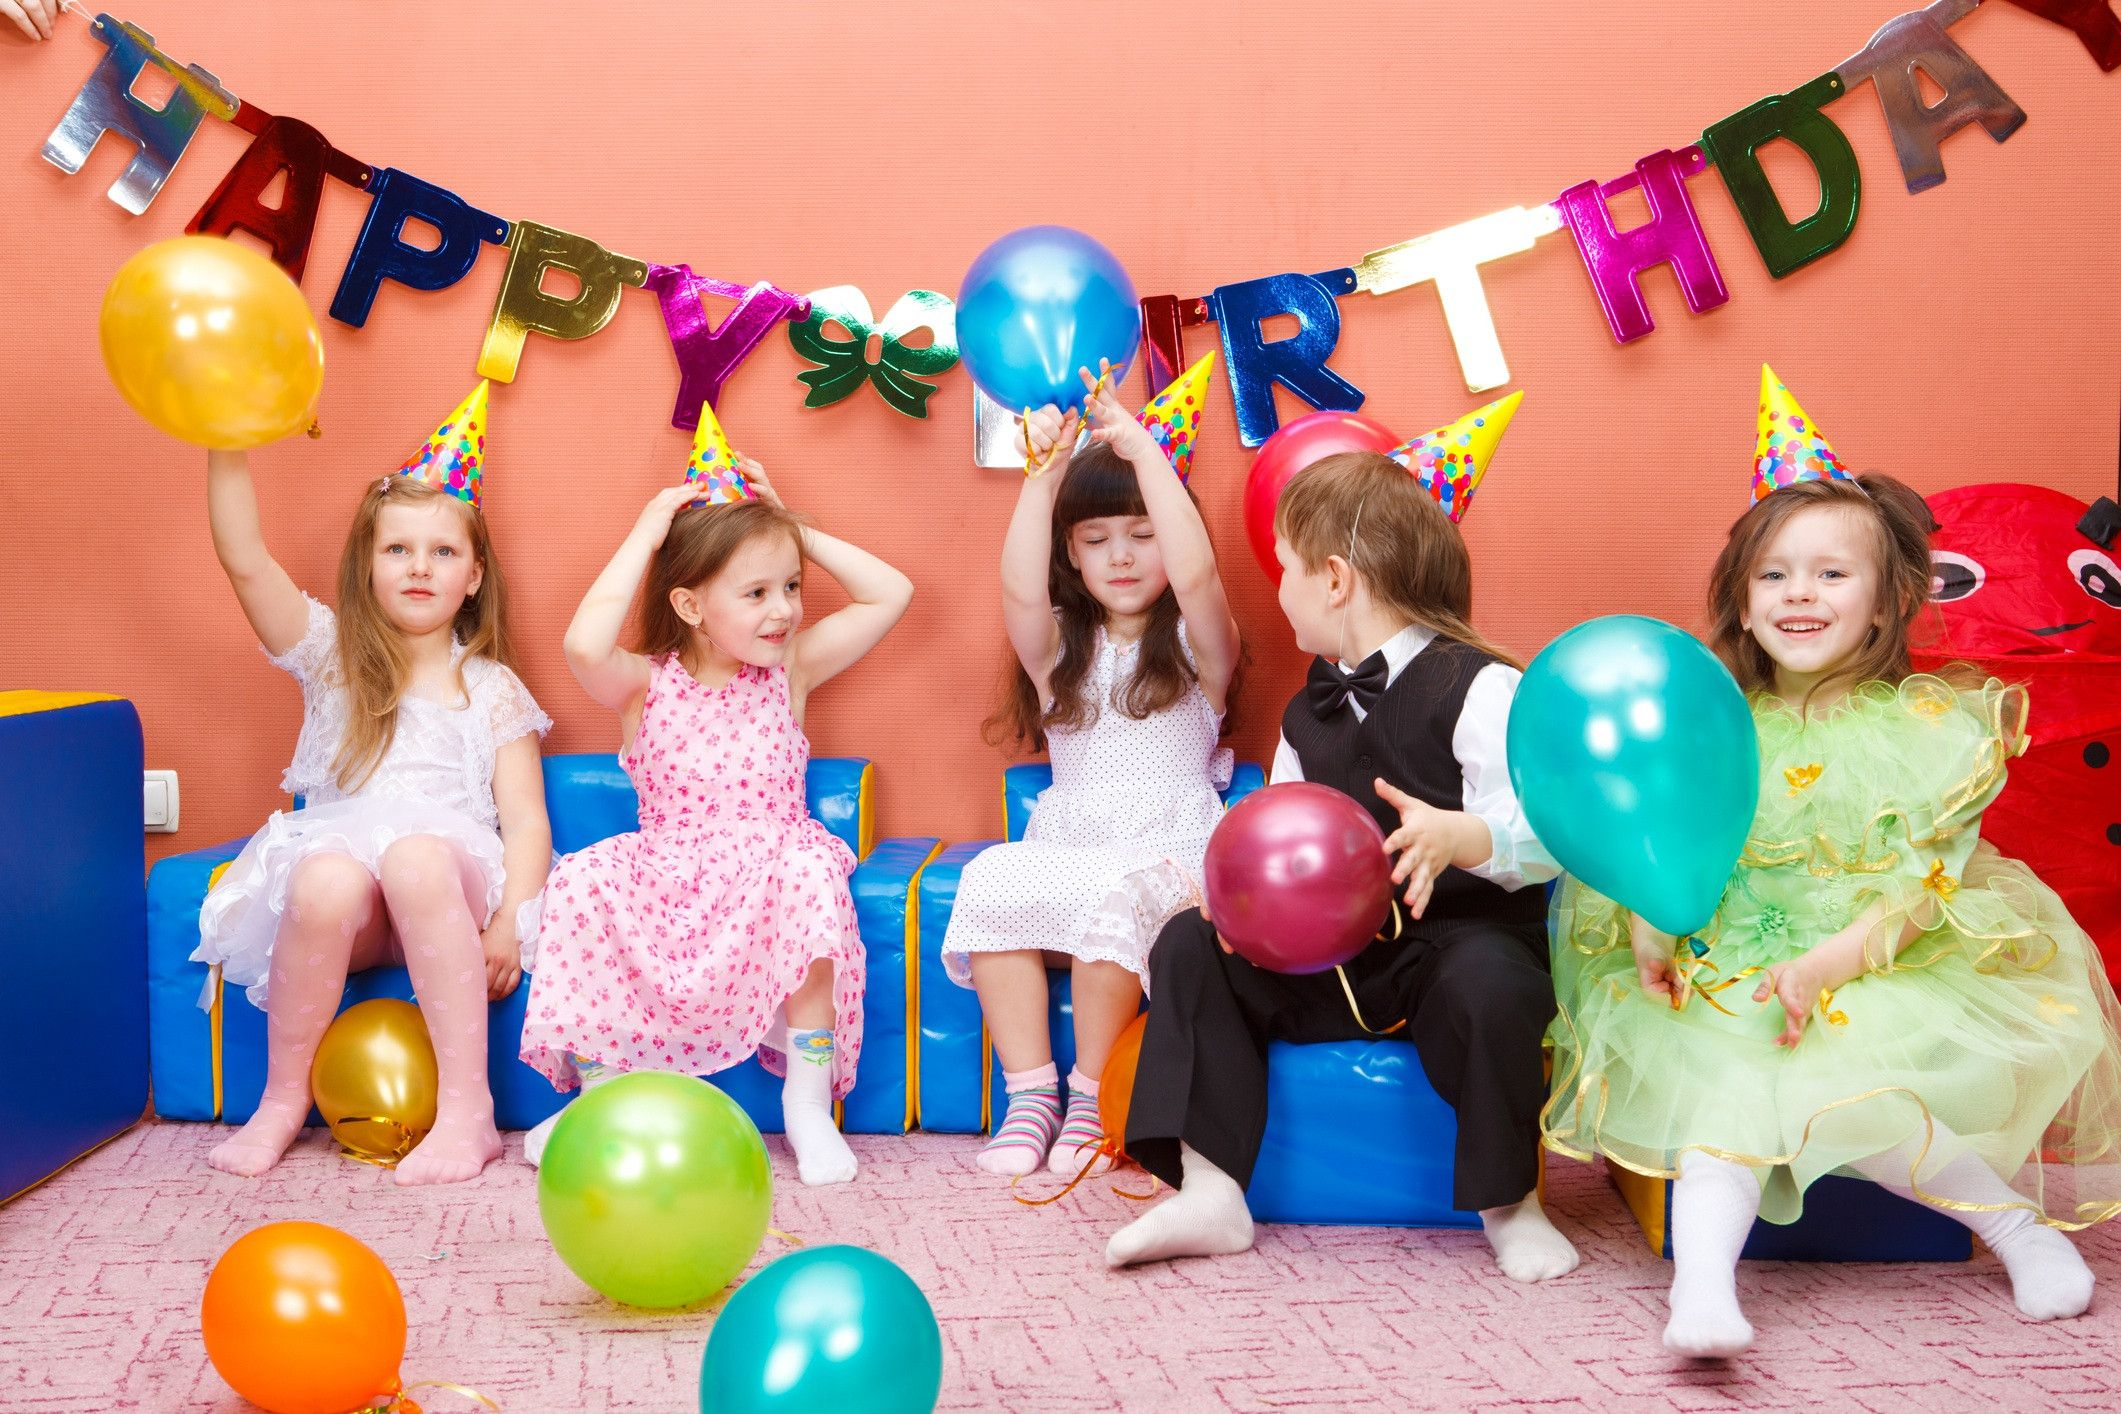 11 12 Year Old Birthday Party Ideas 20 Of The Best Ideas For 11 Year Old Birthd Birthday Wishes For Kids 12 Year Old Birthday Party Ideas Birthday Party Places